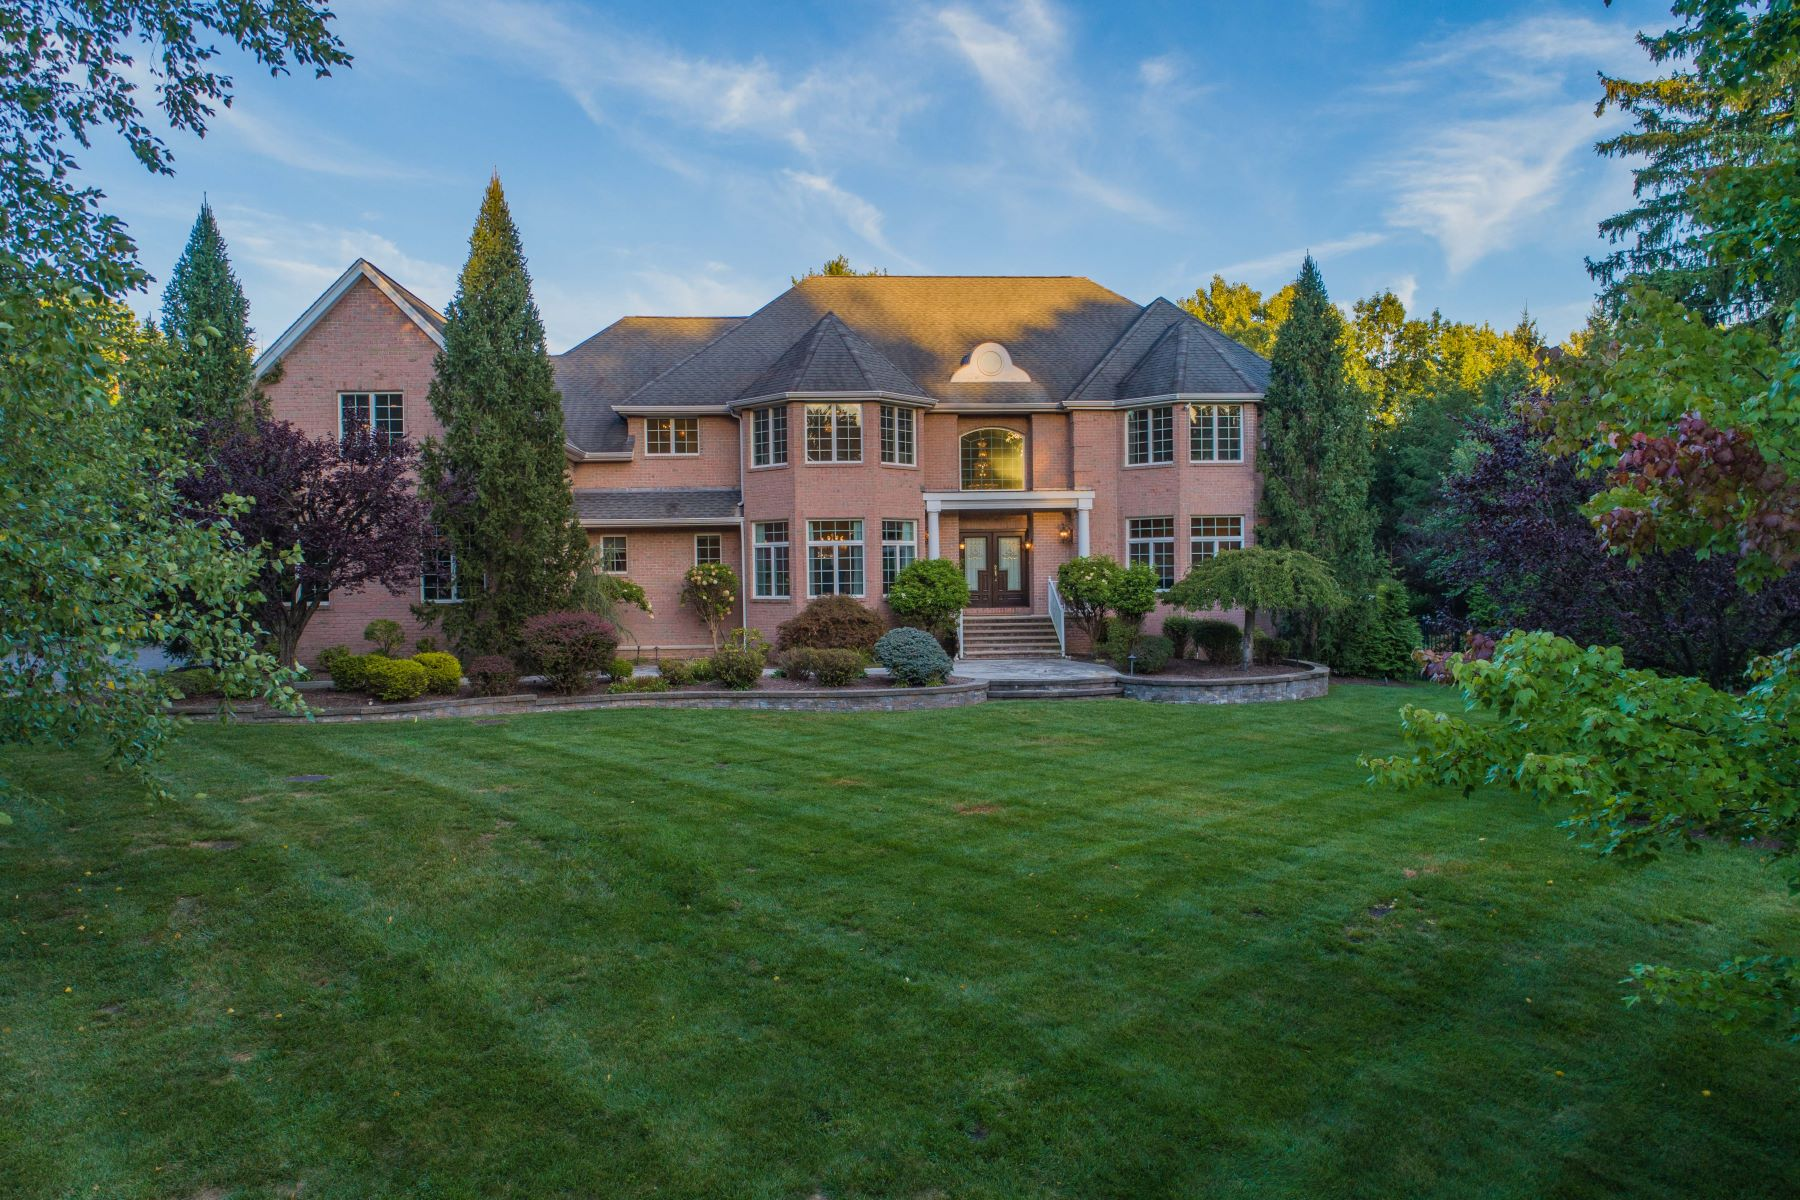 Single Family Homes for Sale at TURN KEY ESTATE 2 Primrose Ct, Upper Saddle River, New Jersey 07458 United States